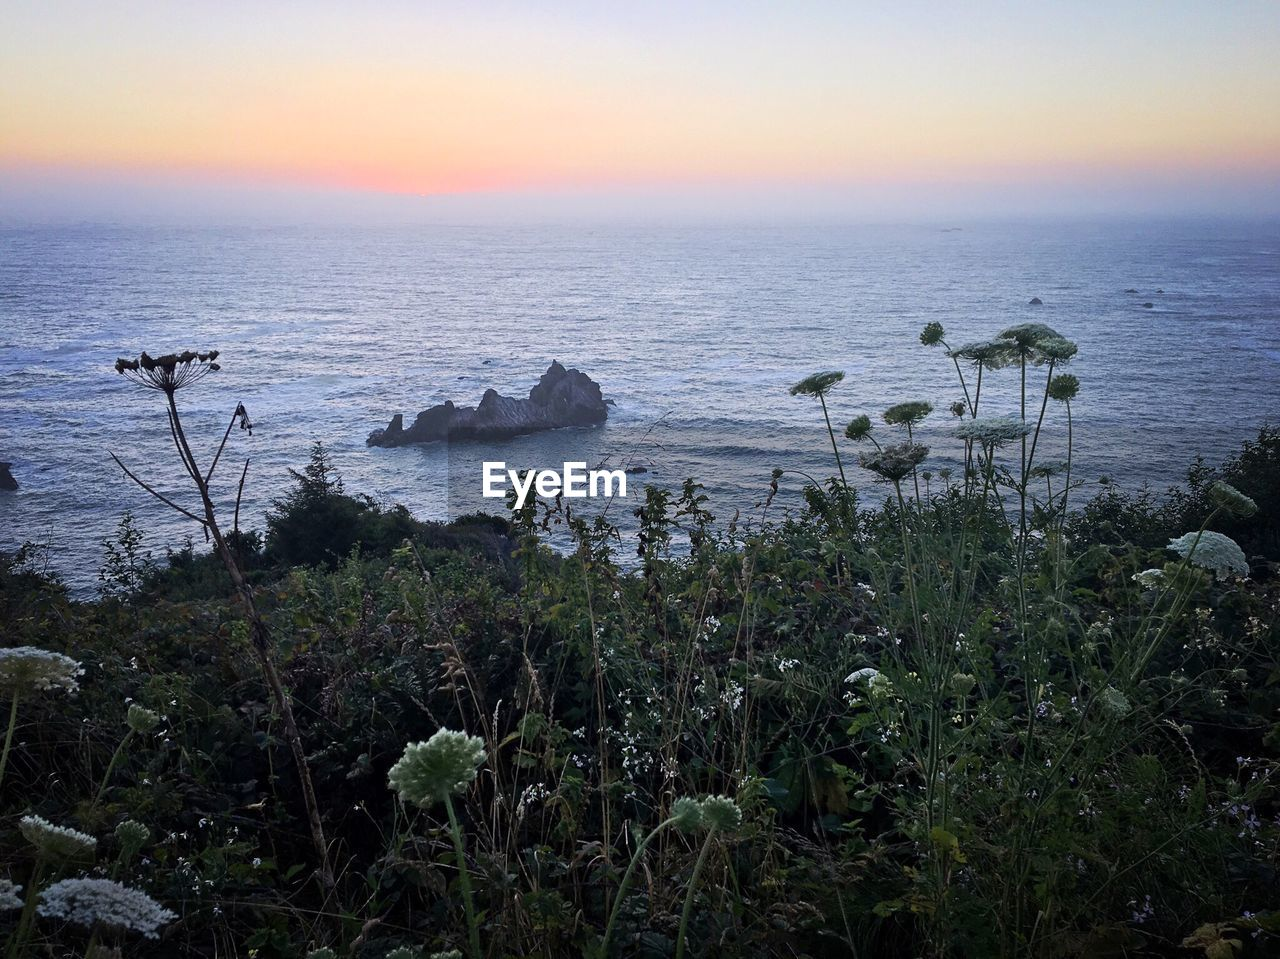 Plants growing against sea during sunset